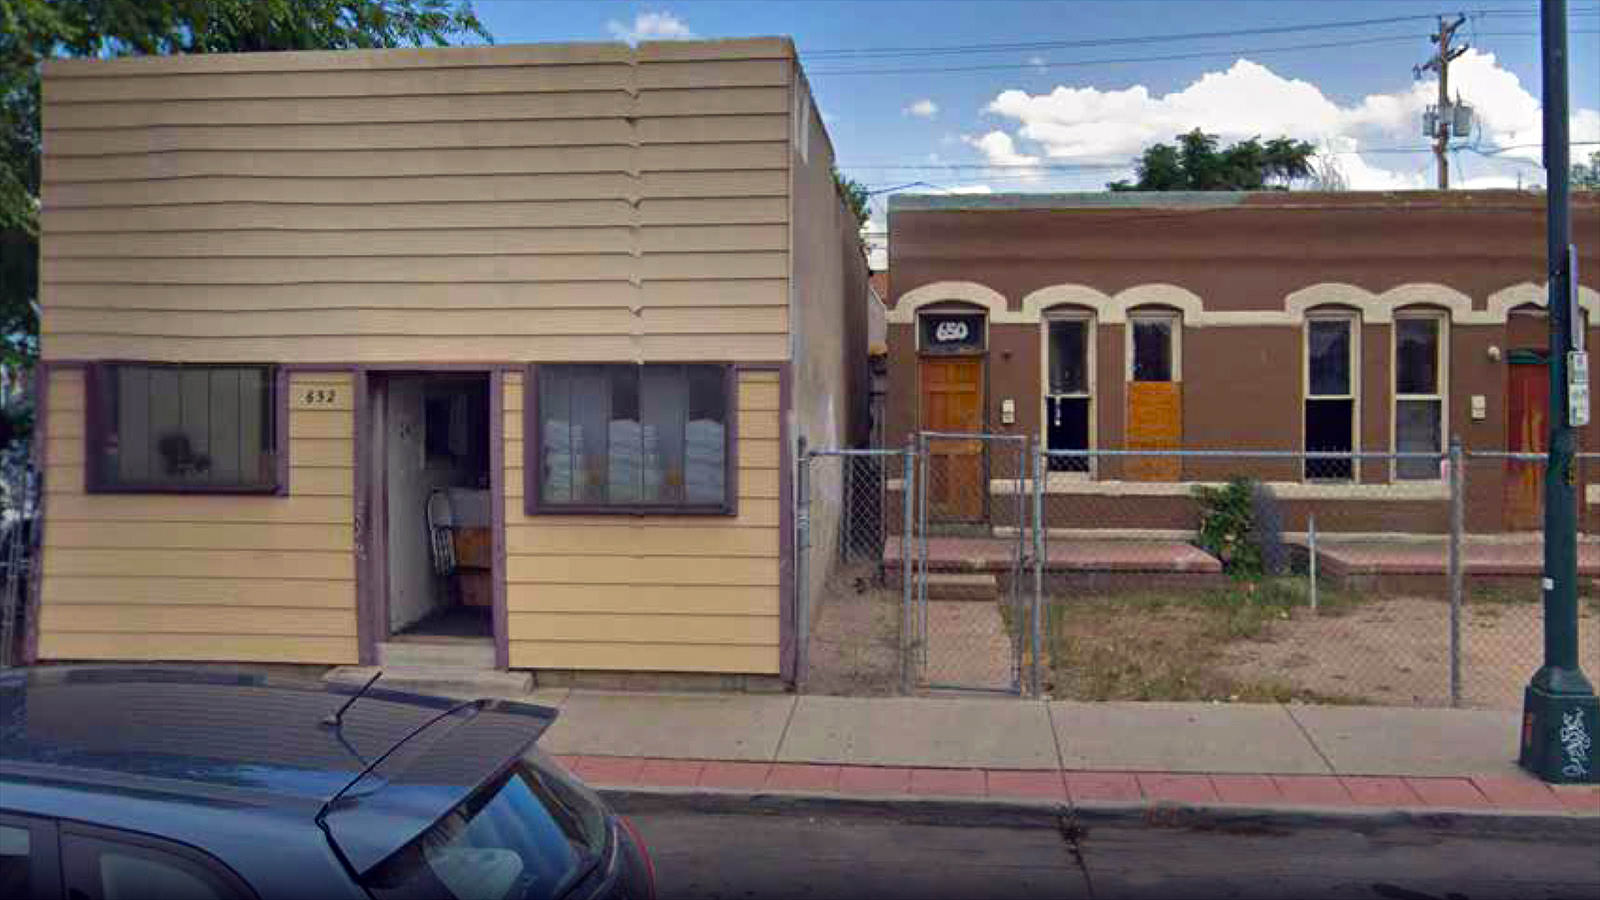 648-652 Santa Fe Dr Denver Commercial real estate broker